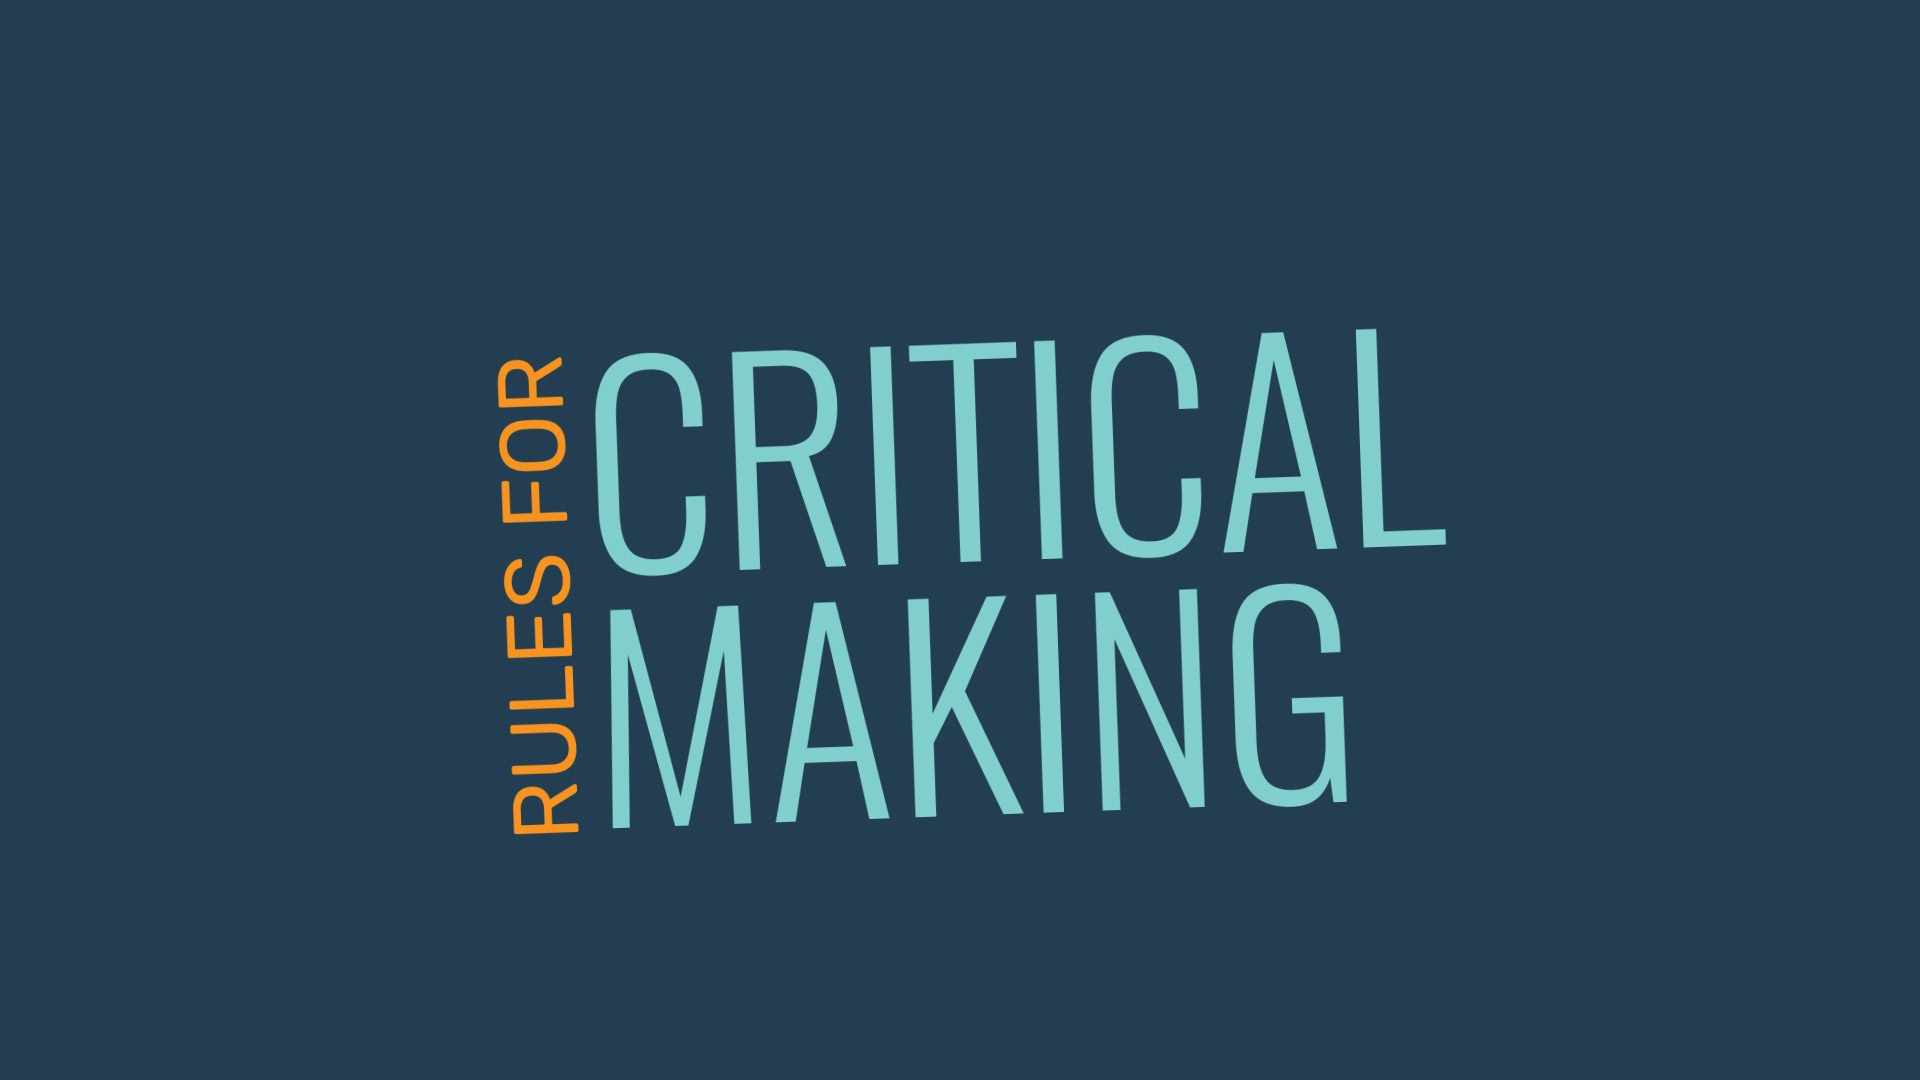 EXPLO's Rules for Critical Making